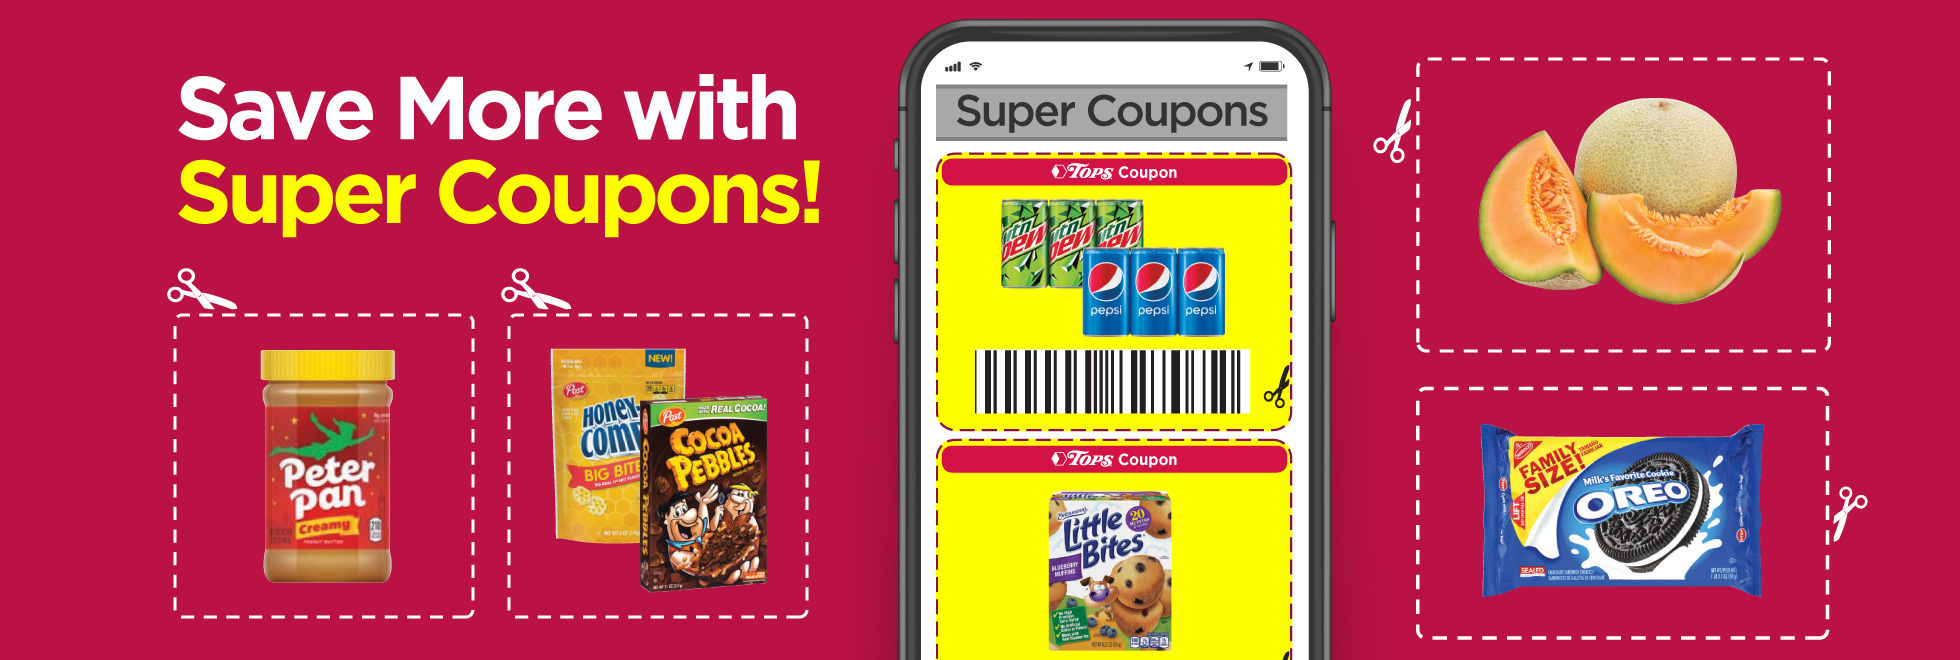 Tops Super Coupons